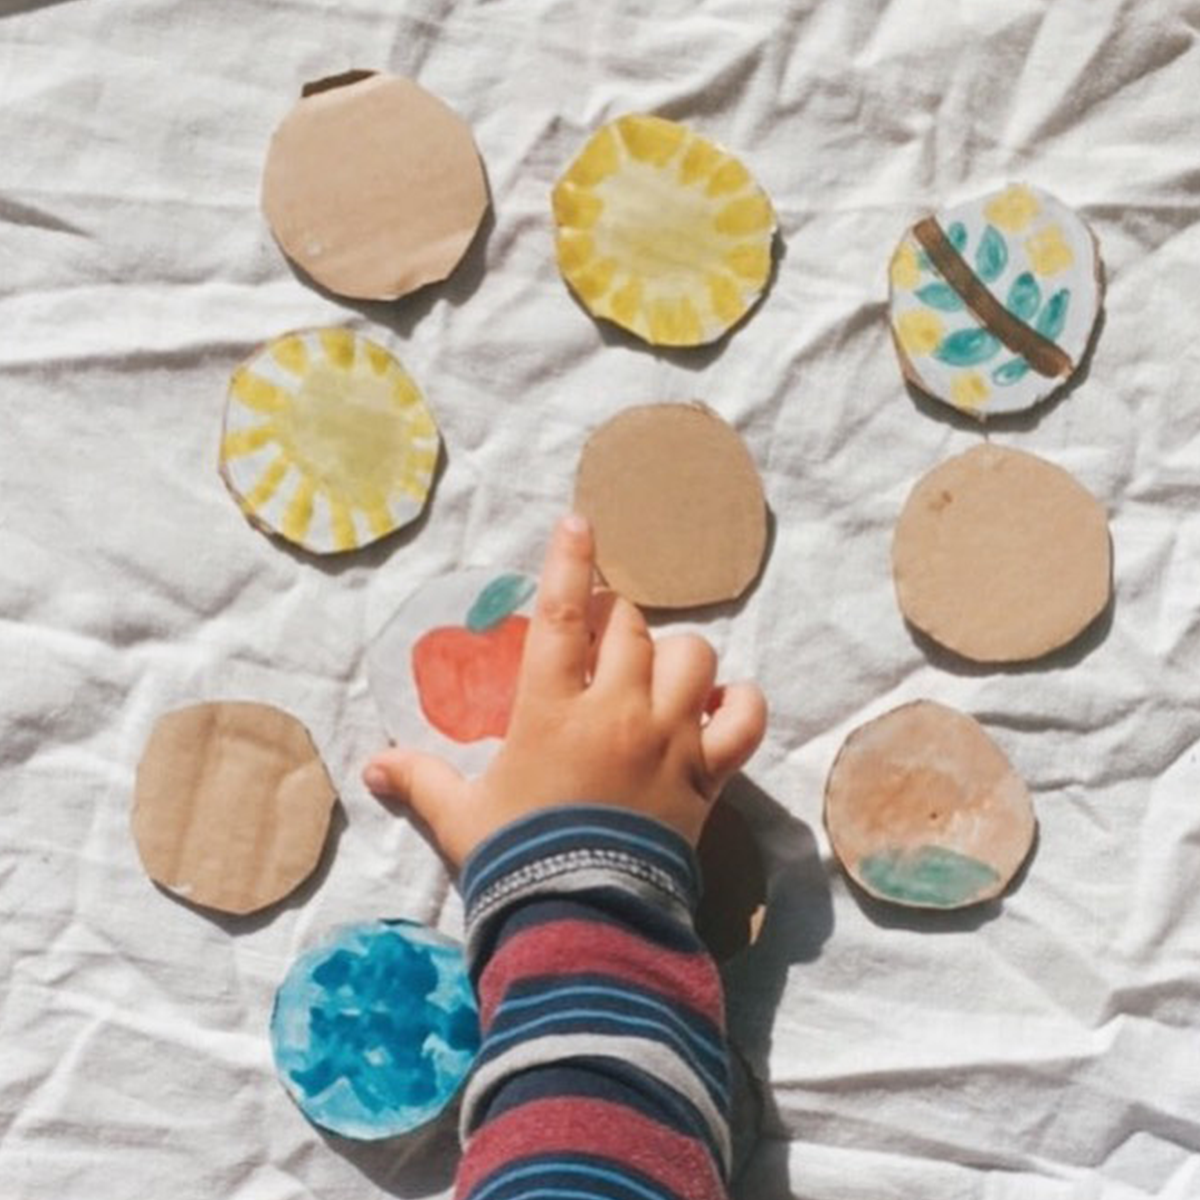 child reaching for a painted memory game created with cardboard and paint